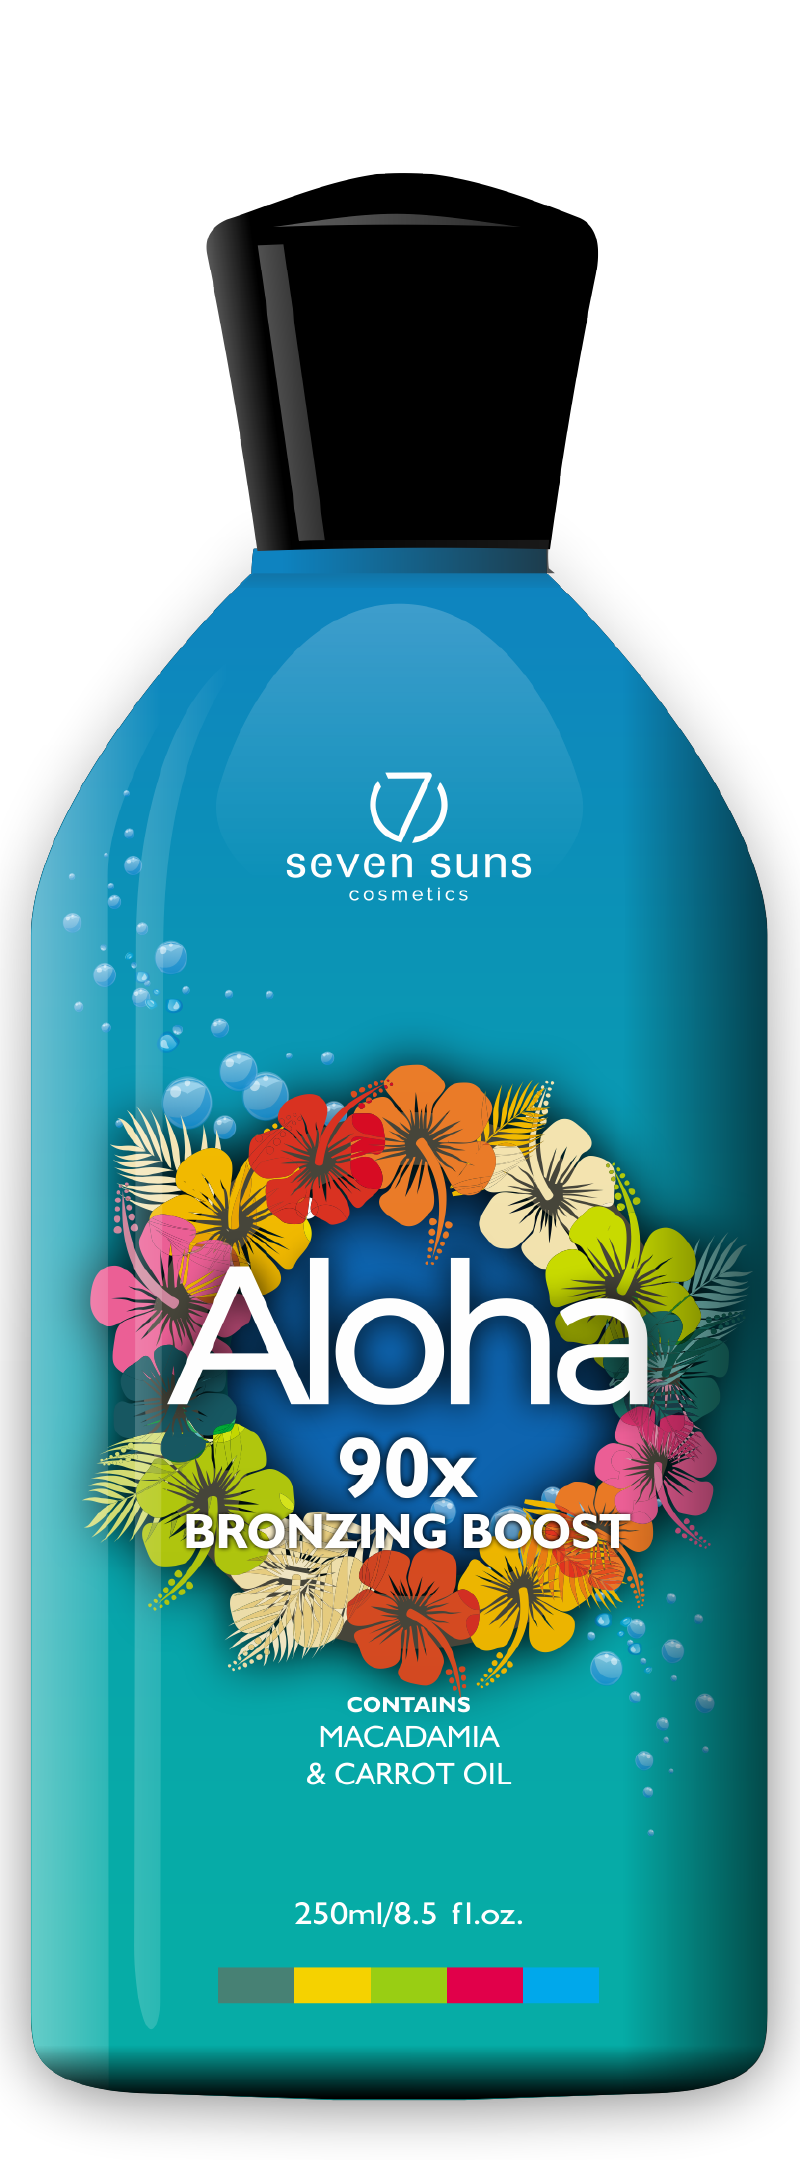 Aloha cosmetic bottle